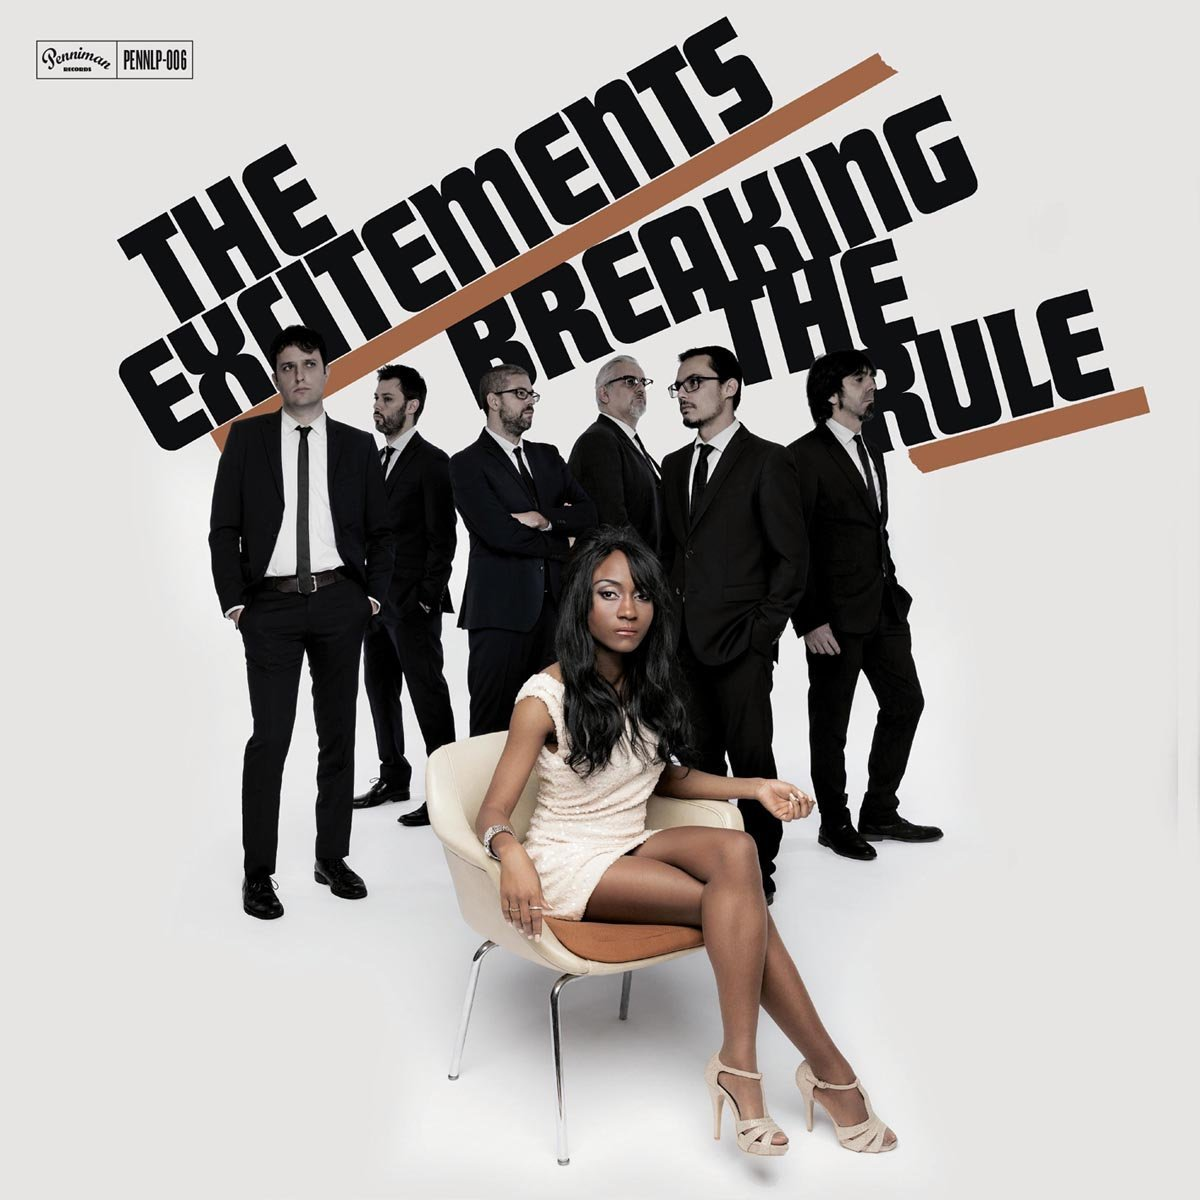 The Excitements - Breaking the Rule